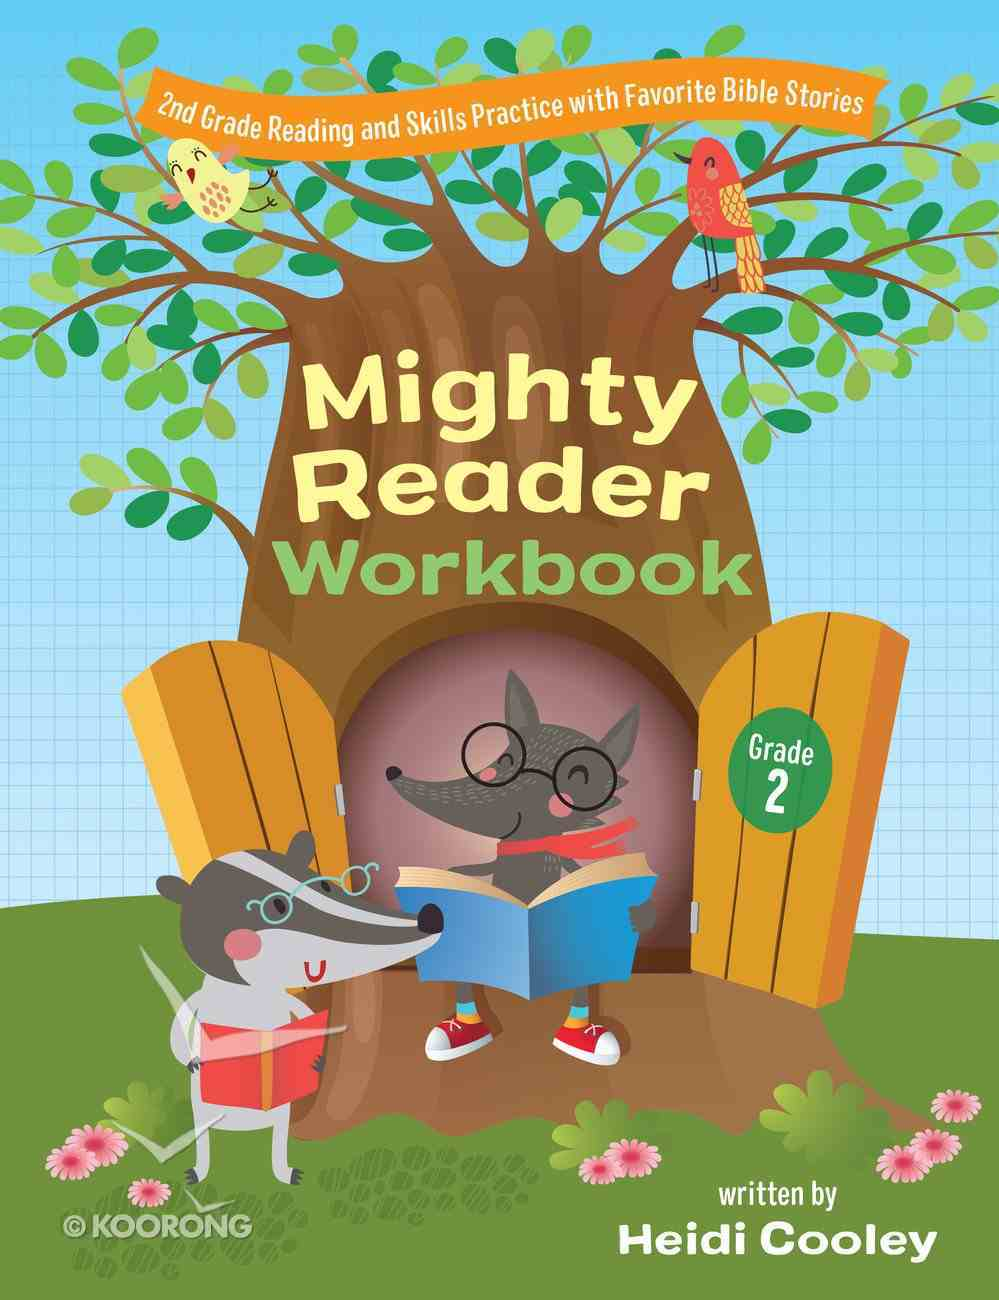 Second Grade Mighty Reader Workbook: Reading and Skills Practice With Favorite Bible Stories Paperback